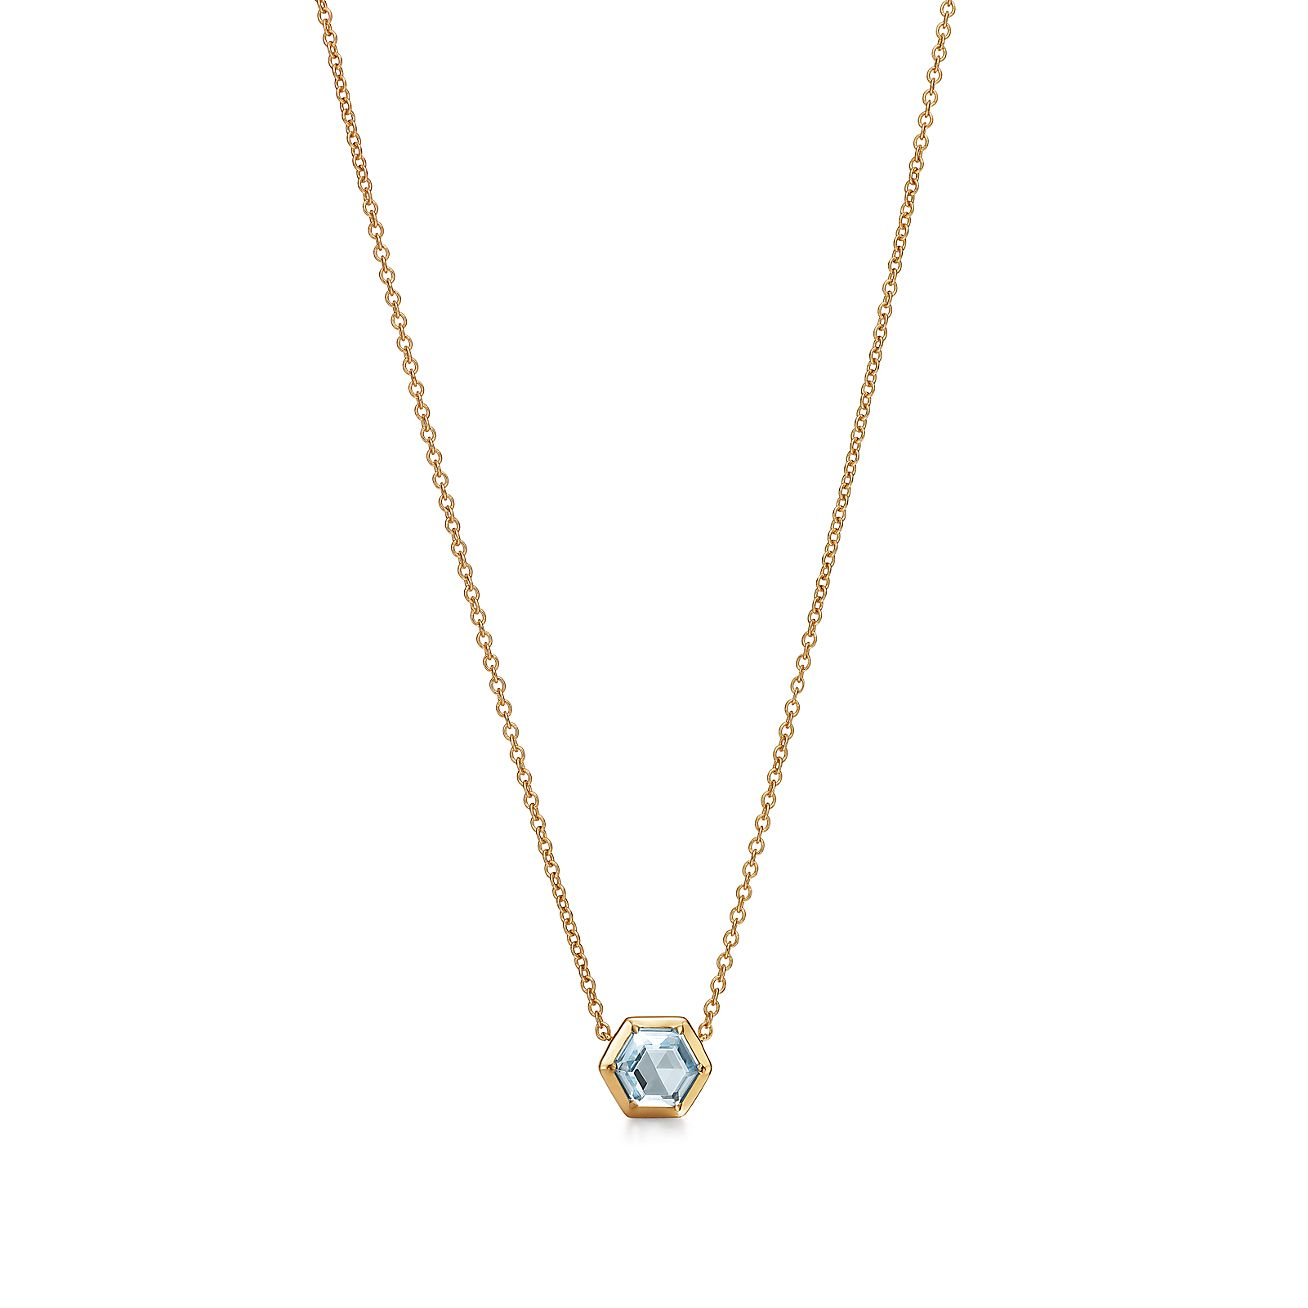 Hexagon Pendant in 18k Gold with a Blue Topaz